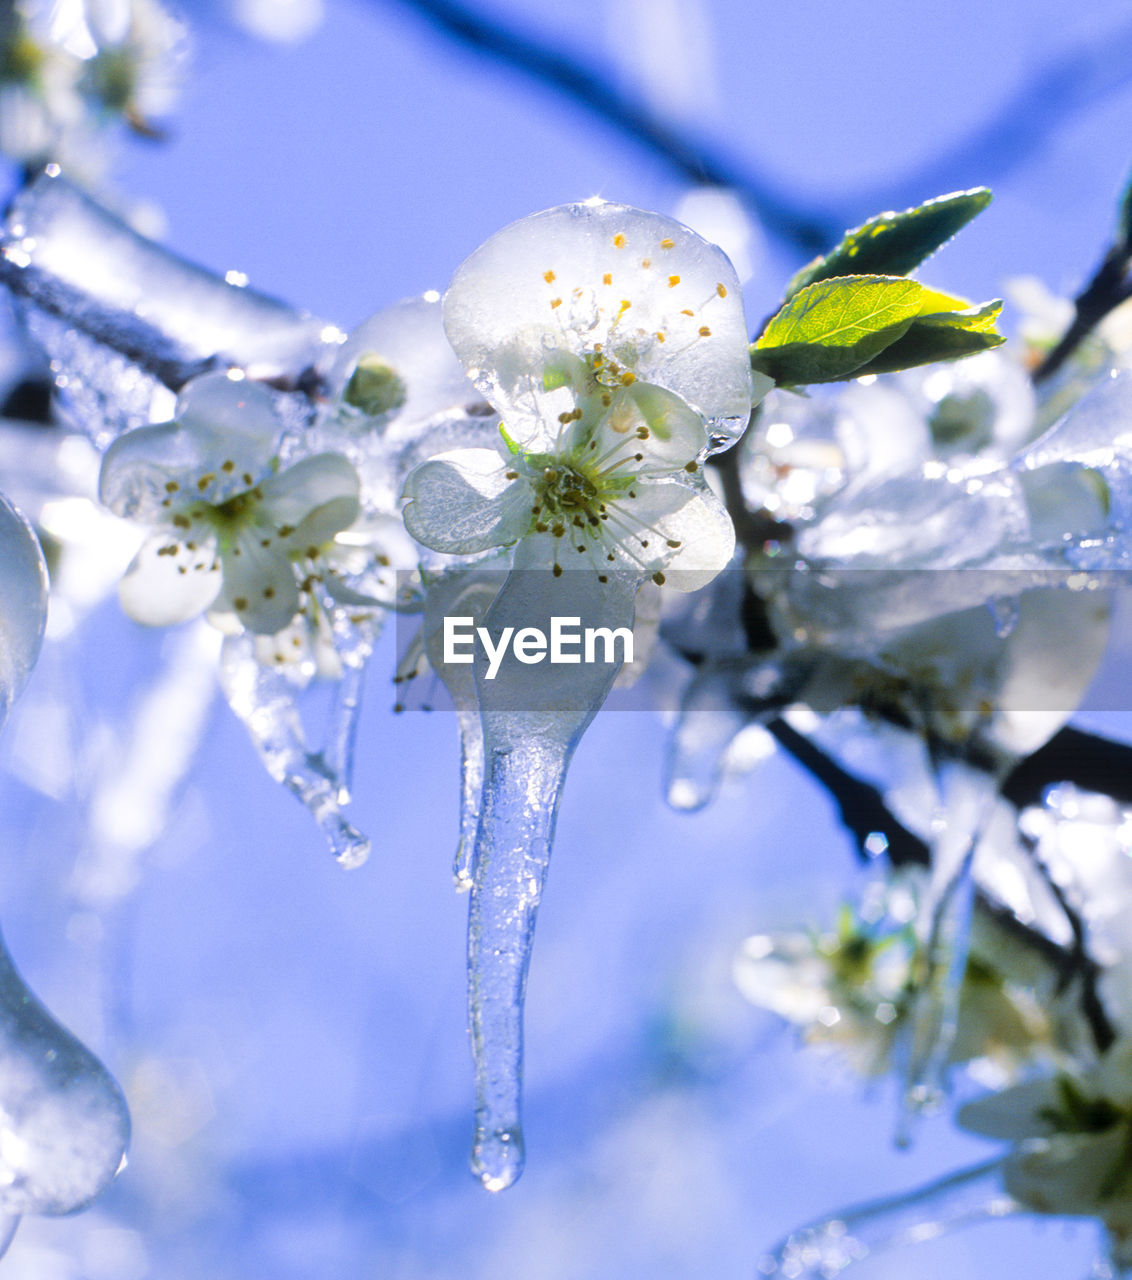 flower, fragility, beauty in nature, nature, white color, growth, tree, freshness, no people, blossom, close-up, day, branch, springtime, petal, twig, blue, outdoors, flower head, plant, cold temperature, low angle view, blooming, sky